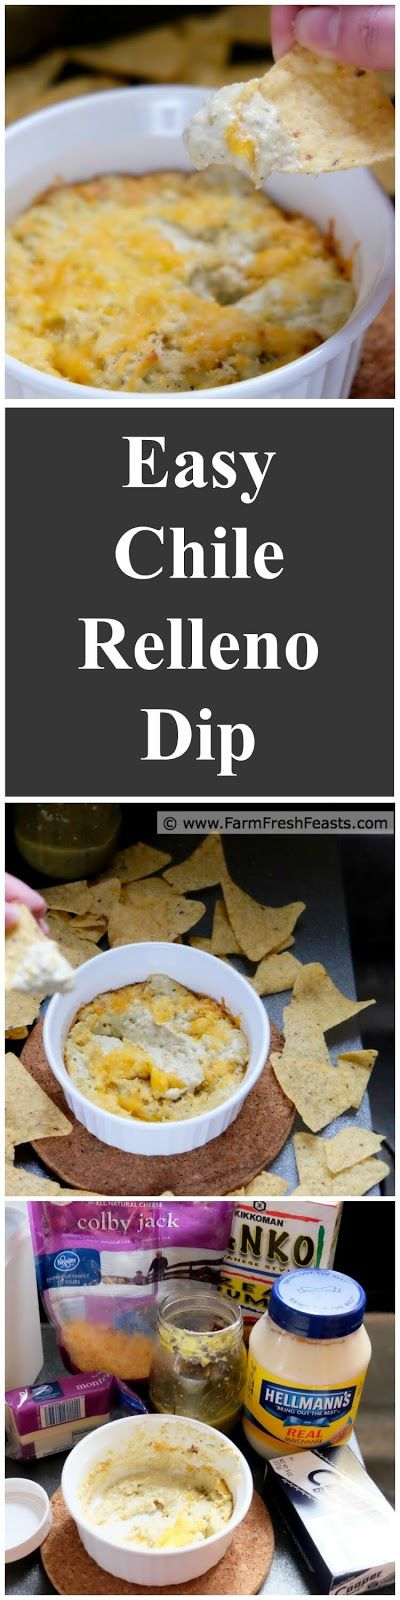 Easy Chile Relleno Dip--using just 6 ingredients and no fancy appliances, make a hot, cheesy & spicy vegetarian dip for your appetizer spread.